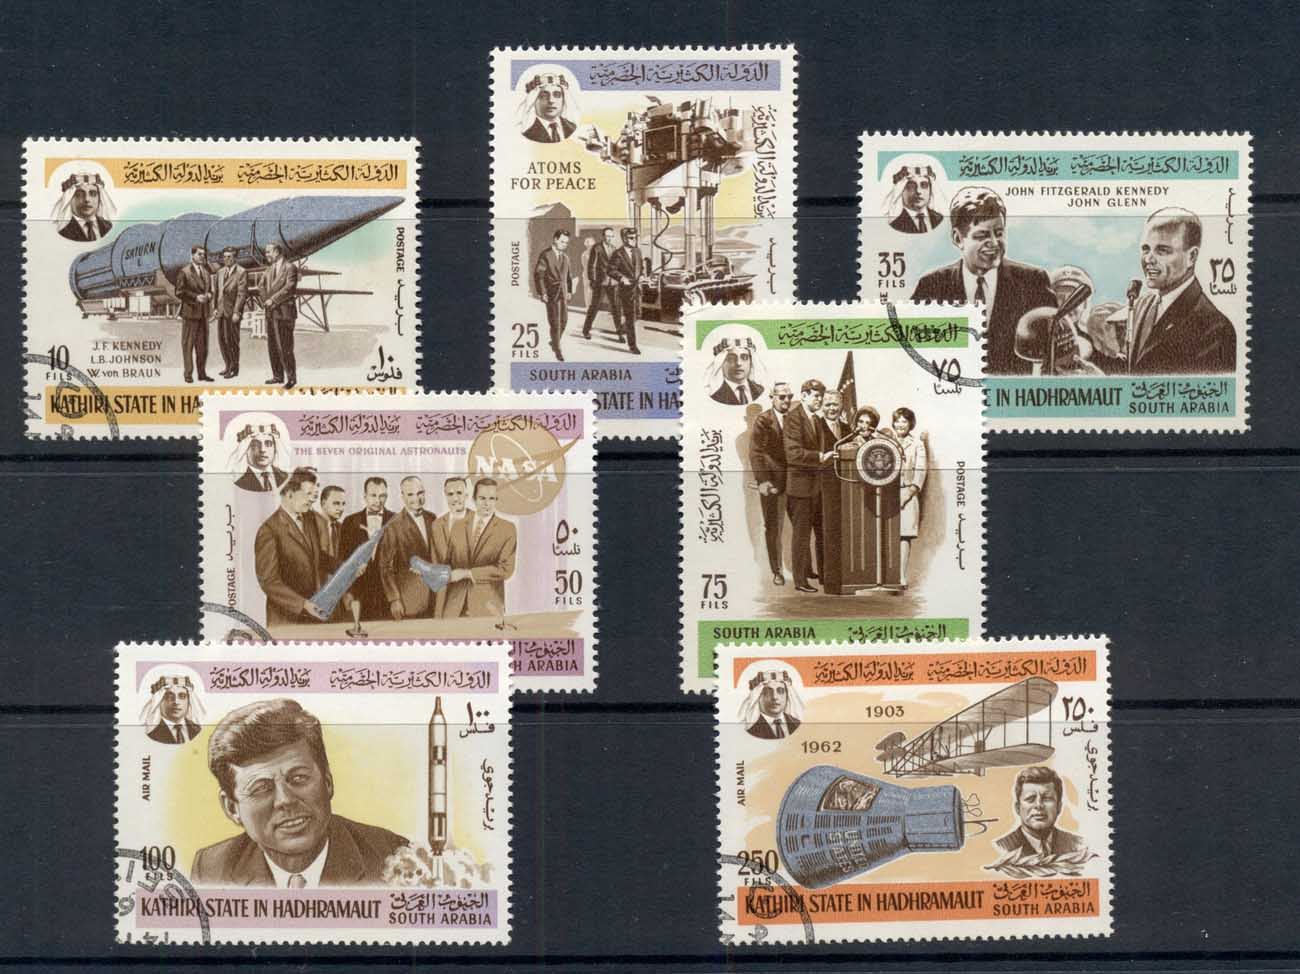 Aden Kathiri State in Hadramaut 1967 JFK kennedy & Space research CTO